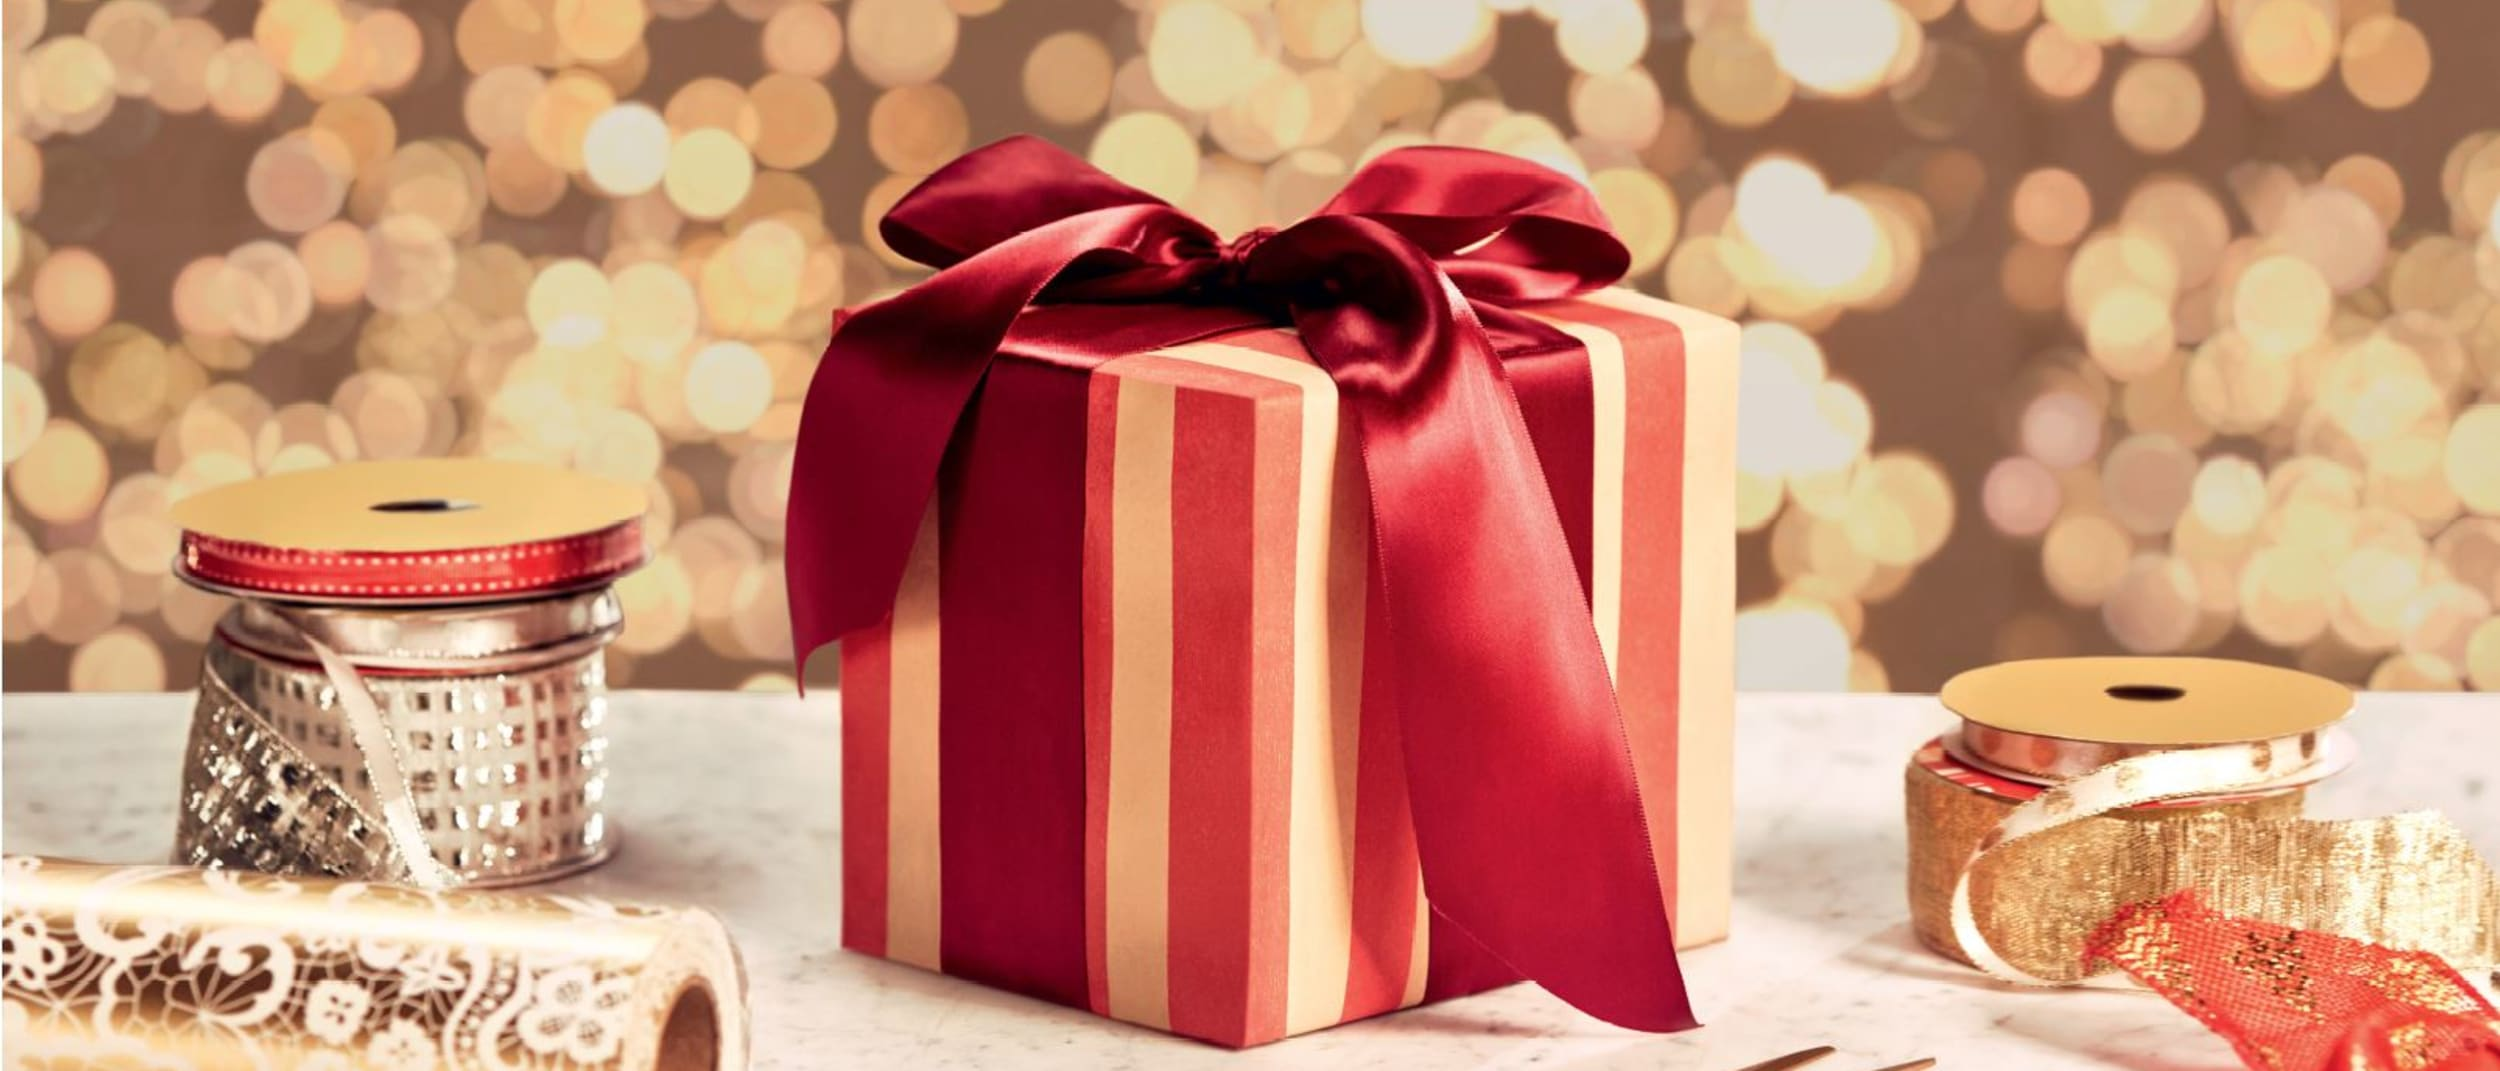 Wrap it up: Sydney's premium gift wrapping service